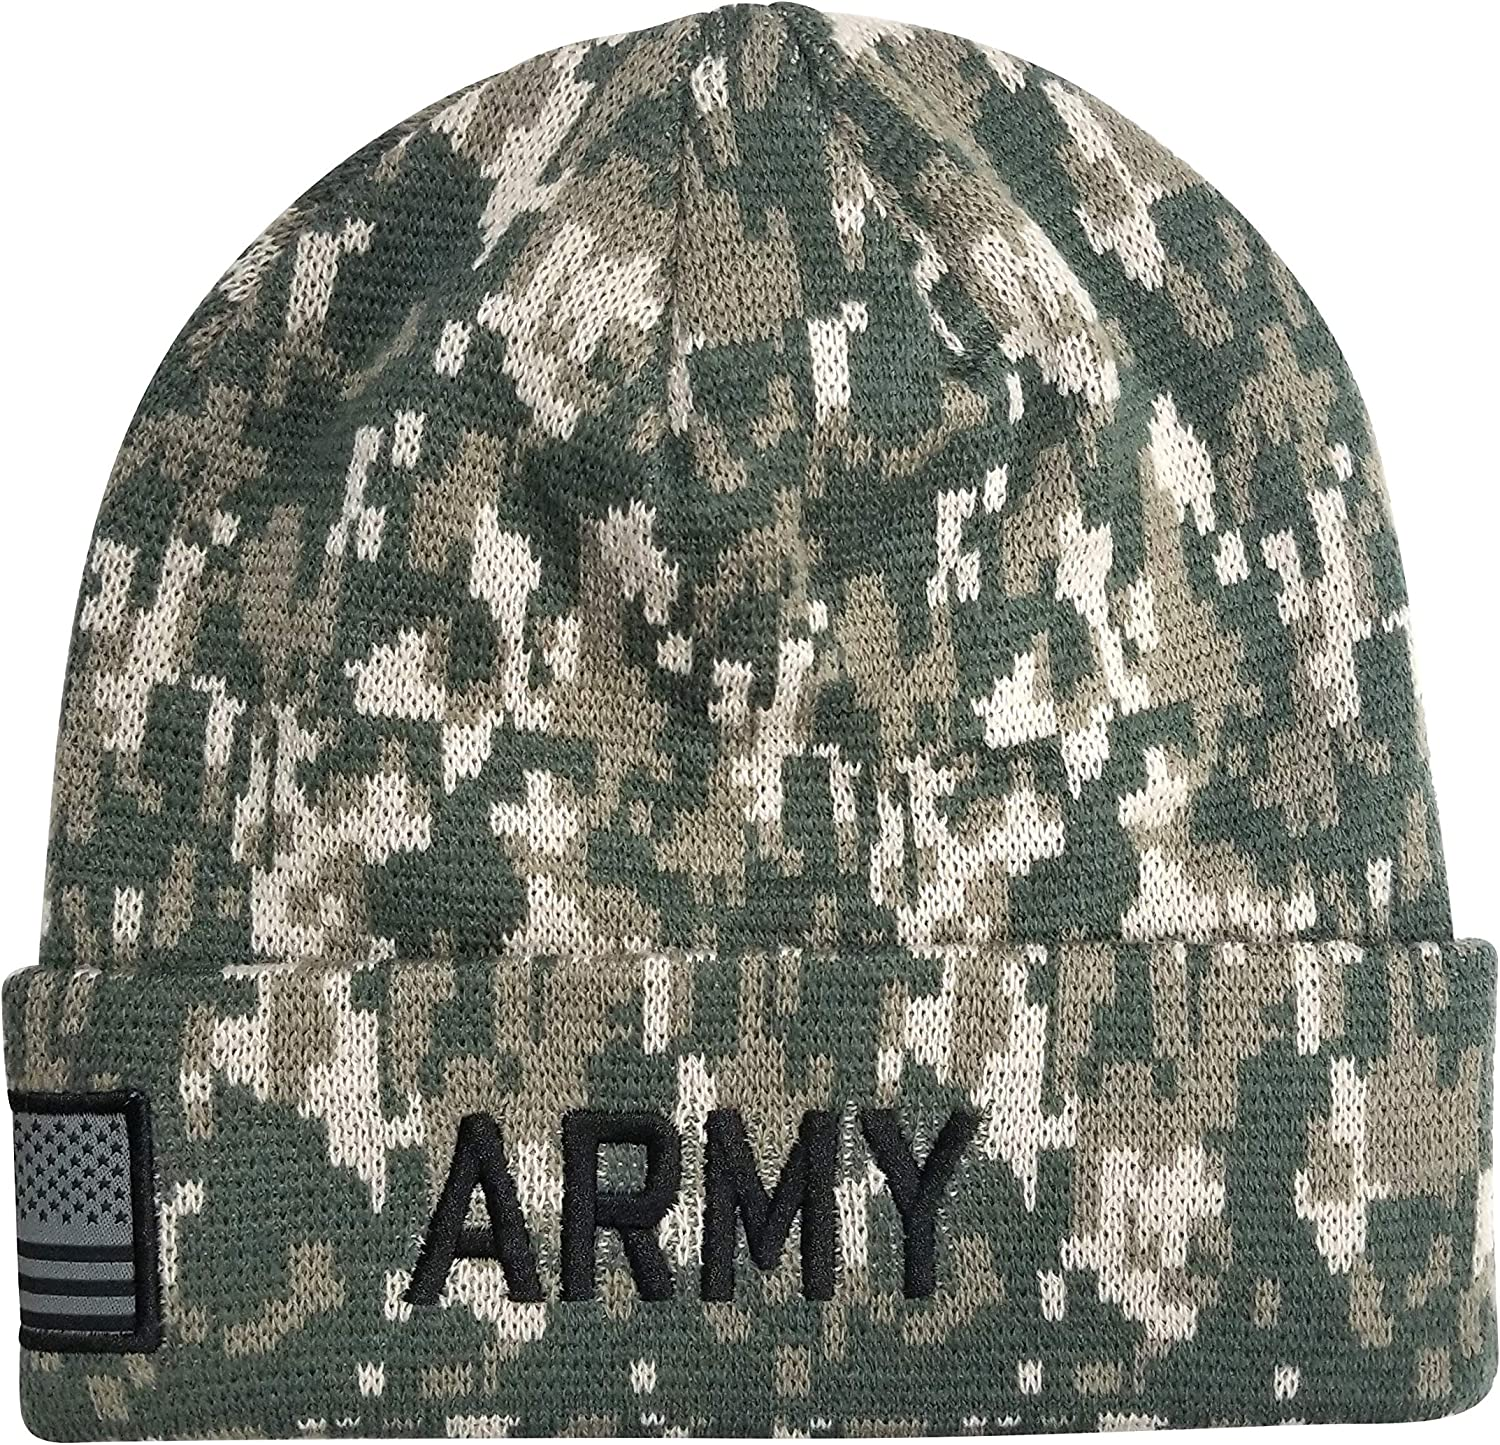 Icon Sports U.S. Military Beanie – Official Embroidered Flag Patch Warm Winter Knit Cap Adult Unisex Hats for Men Women